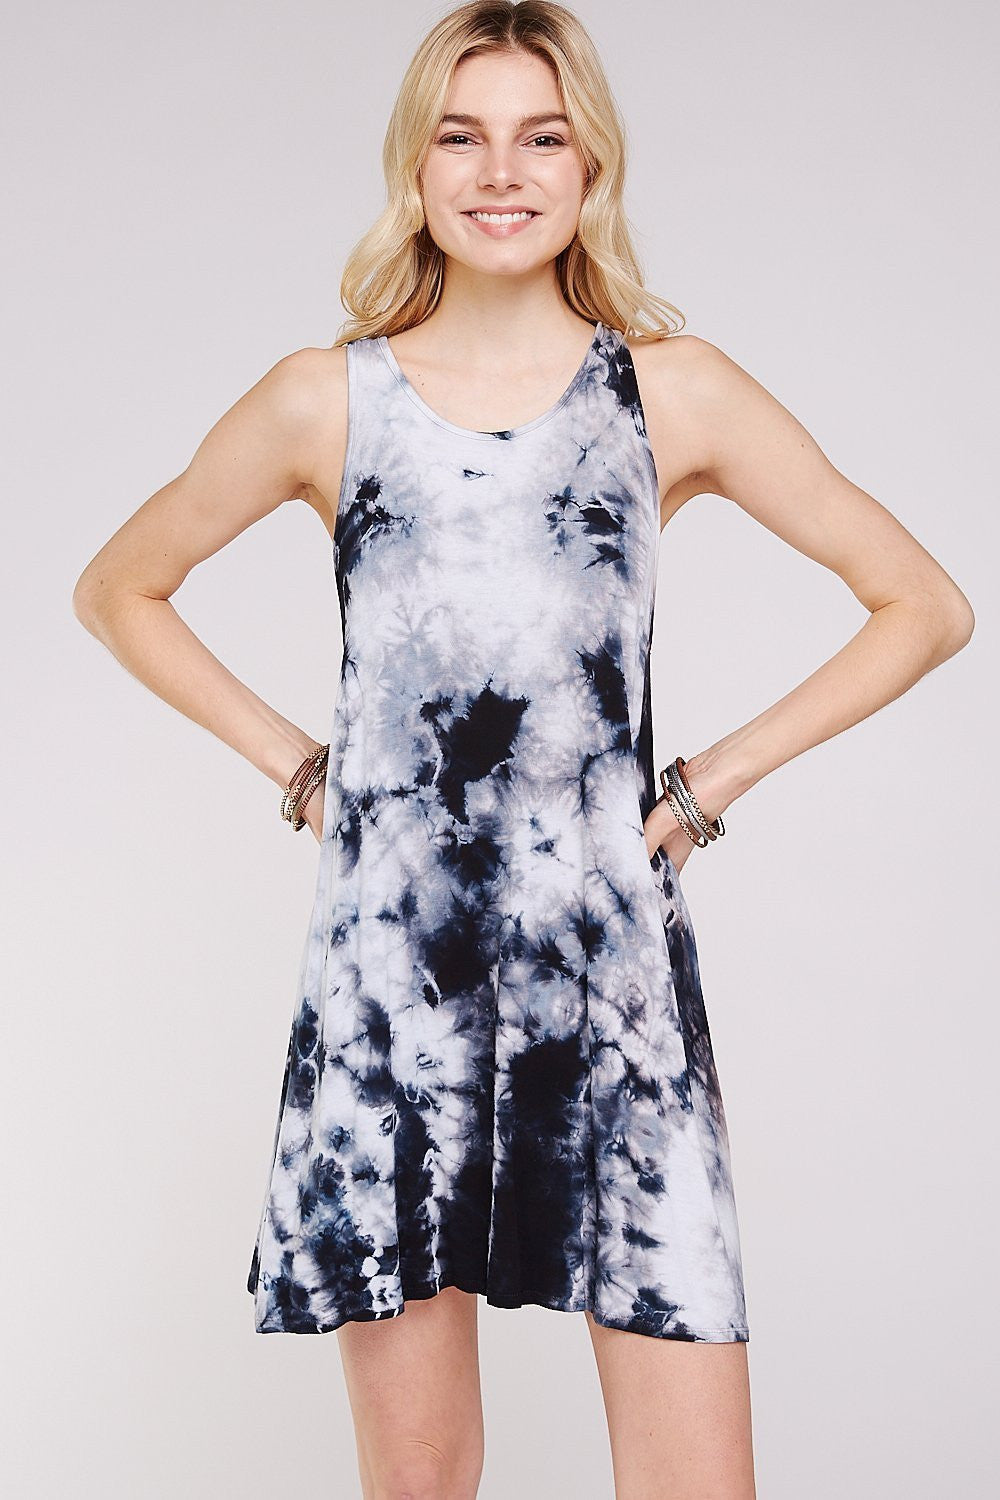 Wholesale Clothing, Online Wholesale Clothing, Women Clothing, Bohemian, Free People, tiedye, specialty wash, wholesale seller, wholesale women clothing shop, gypsy look, USA made, URBAN X APPAREL-DRESSES-UDR7071C, fashiontrend2019